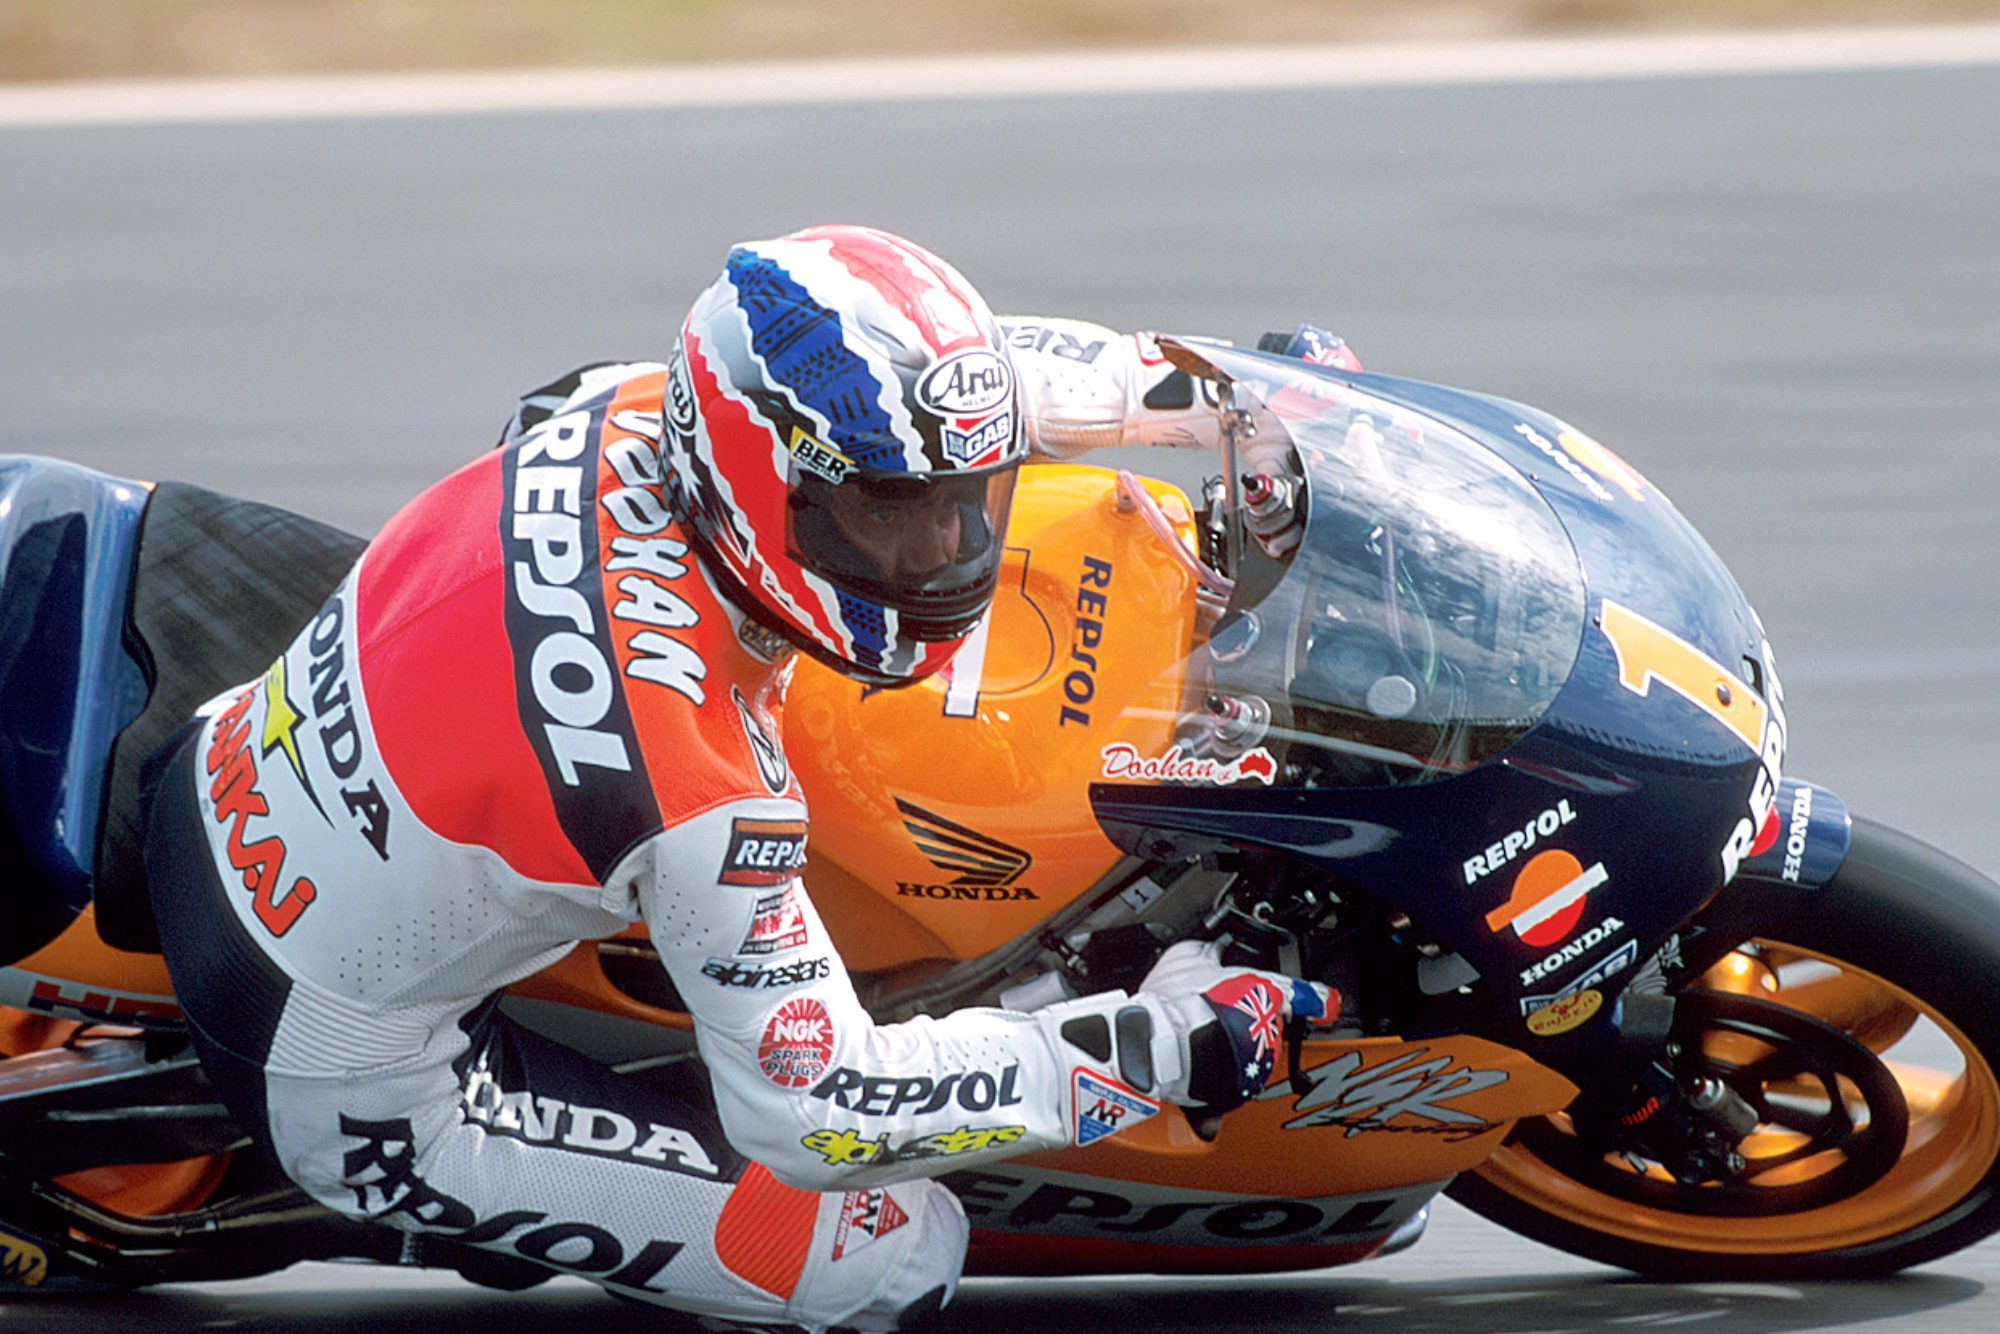 Mick Doohan and MotoGP's greatest comeback